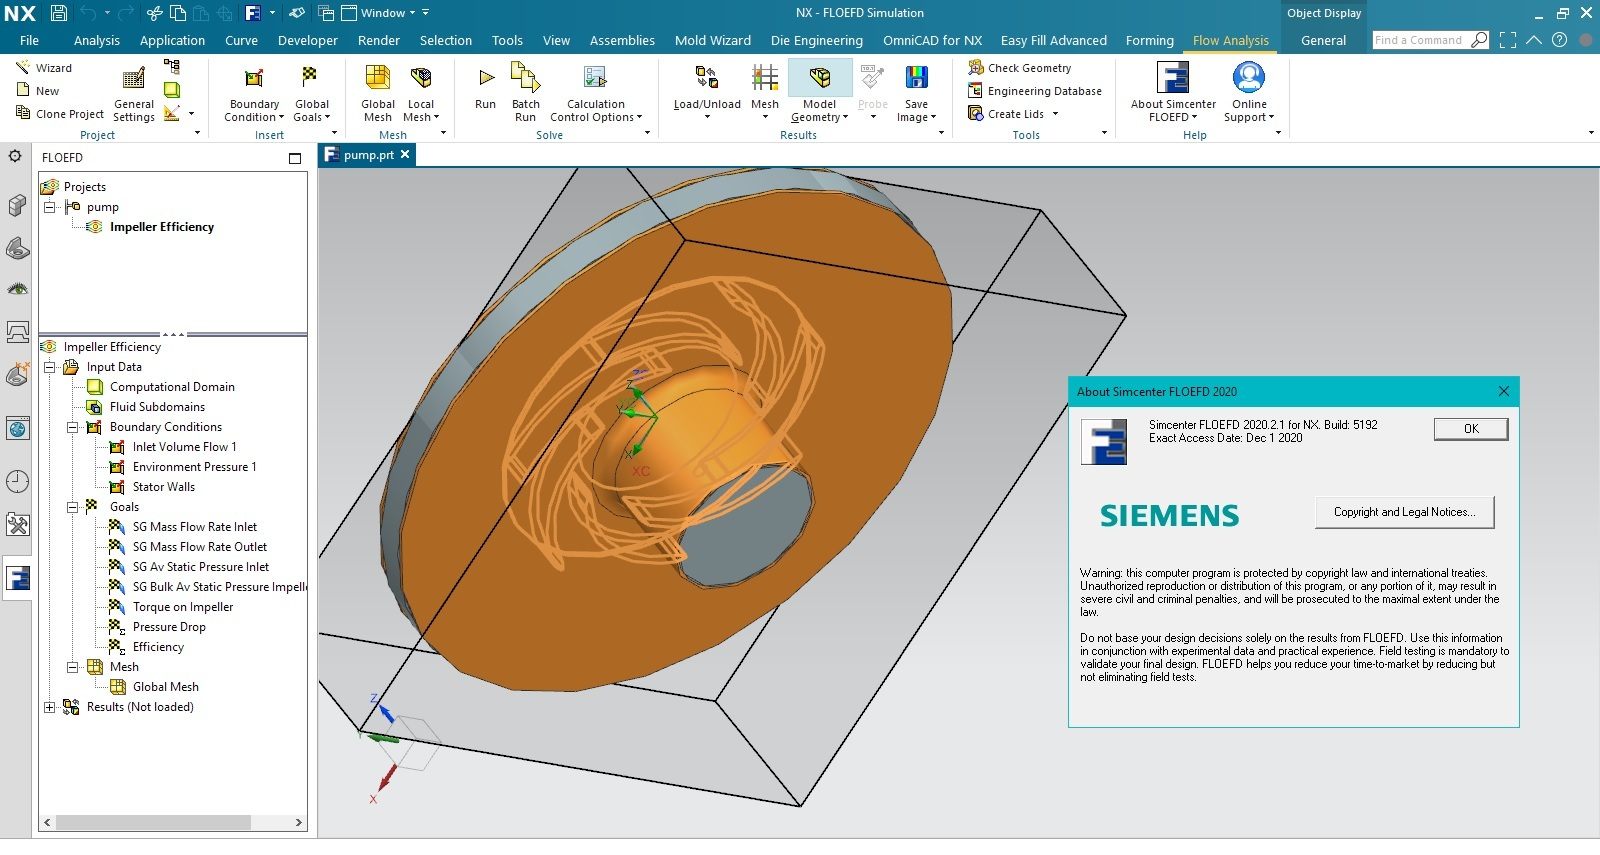 Download Siemens Simcenter FloEFD 2020.2.1 v5192 for Siemens NX Win64